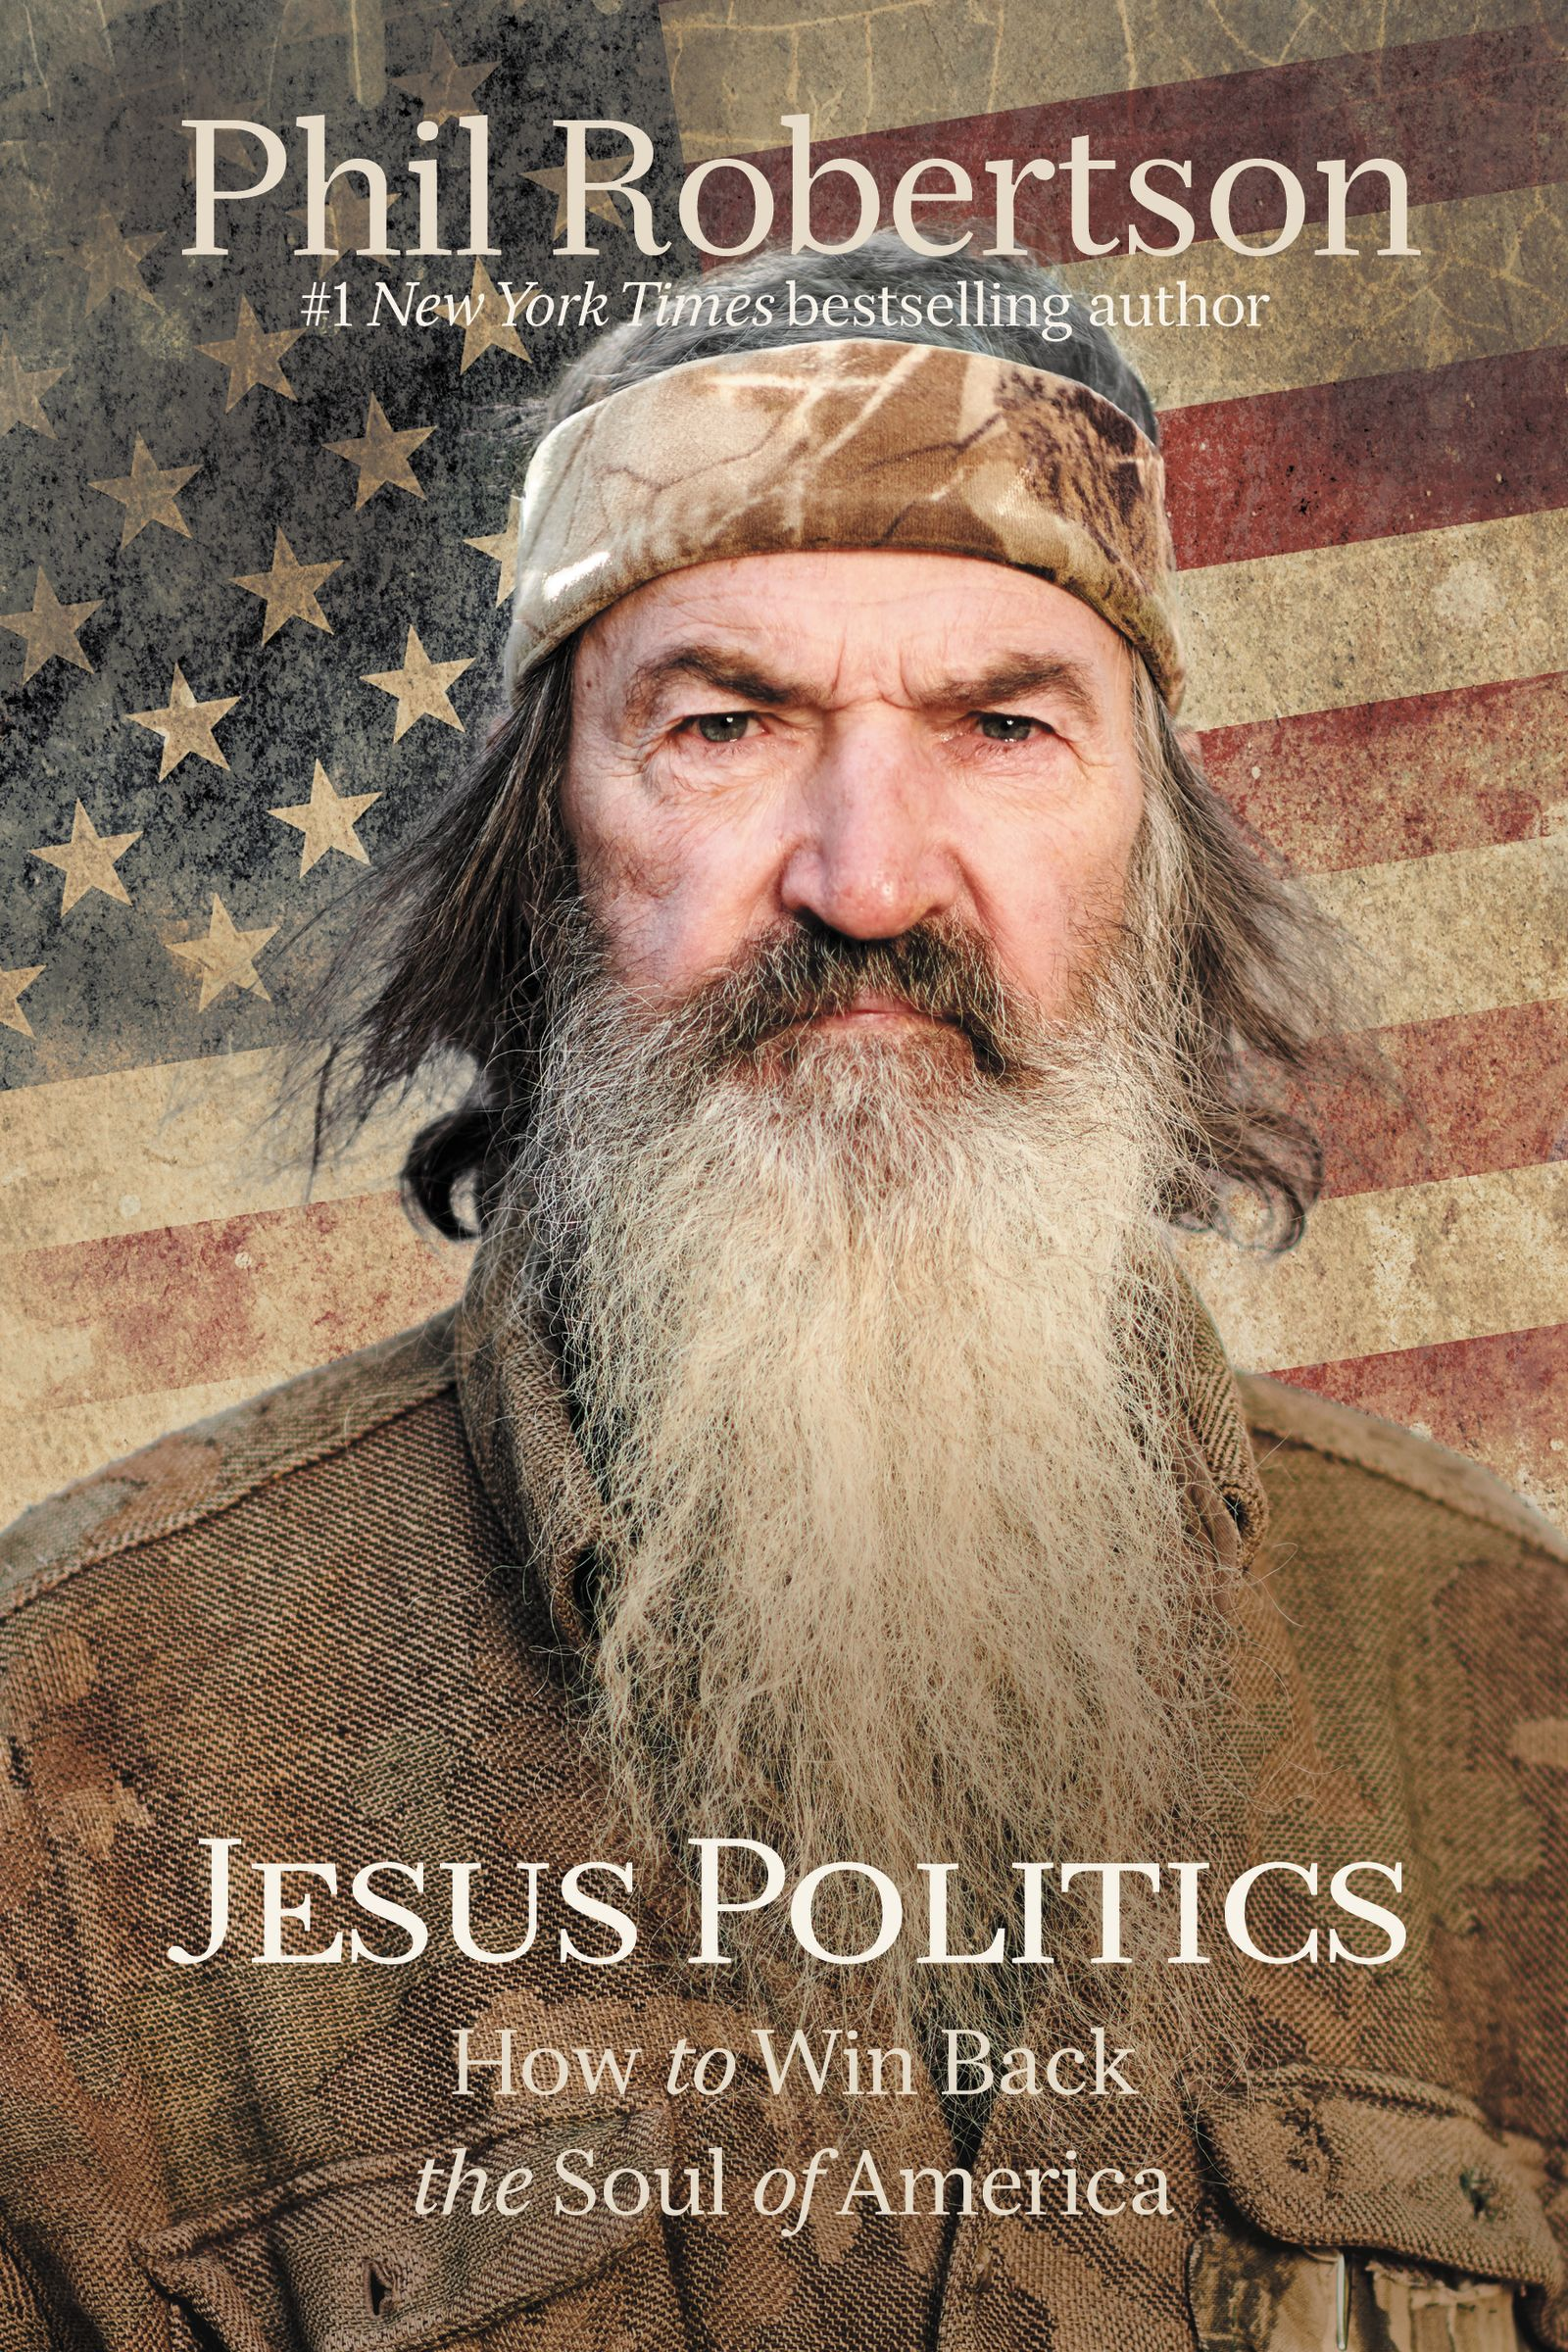 Jesus Politics How to Win Back the Soul of AmericabyPhil Robertson